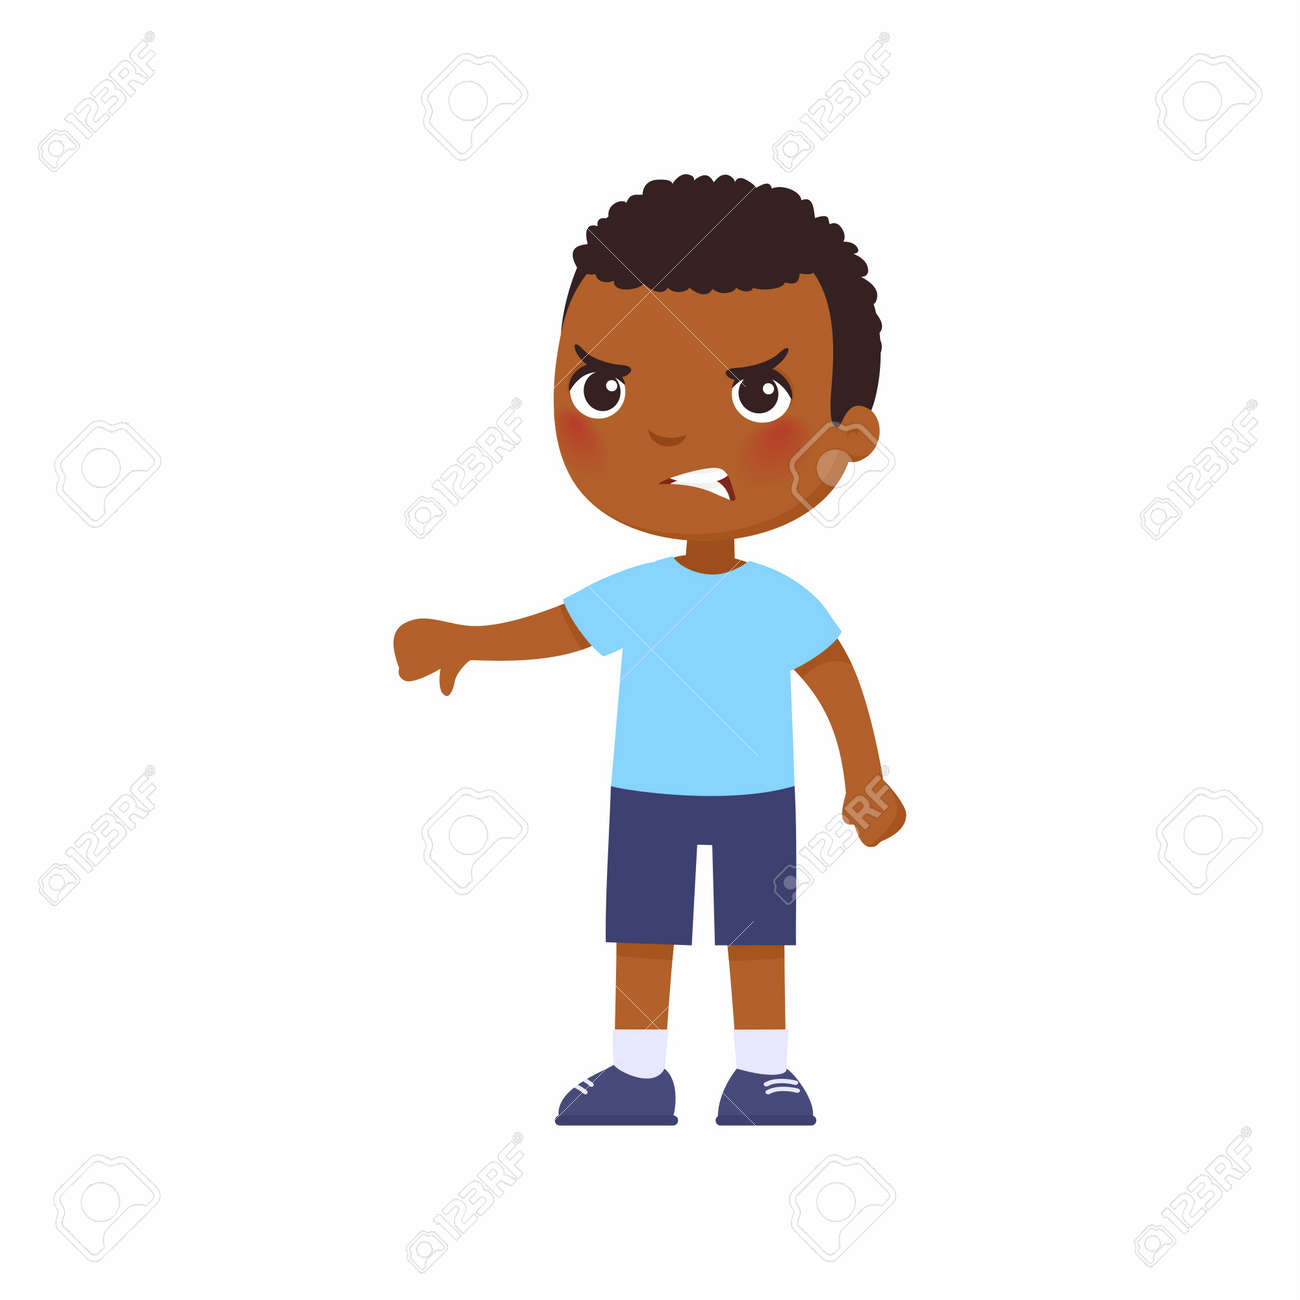 Little African boy showing thumb down gesture. Upset dark skin child standing alone cartoon character. Person negative emotion, disagreement expression - 170487279